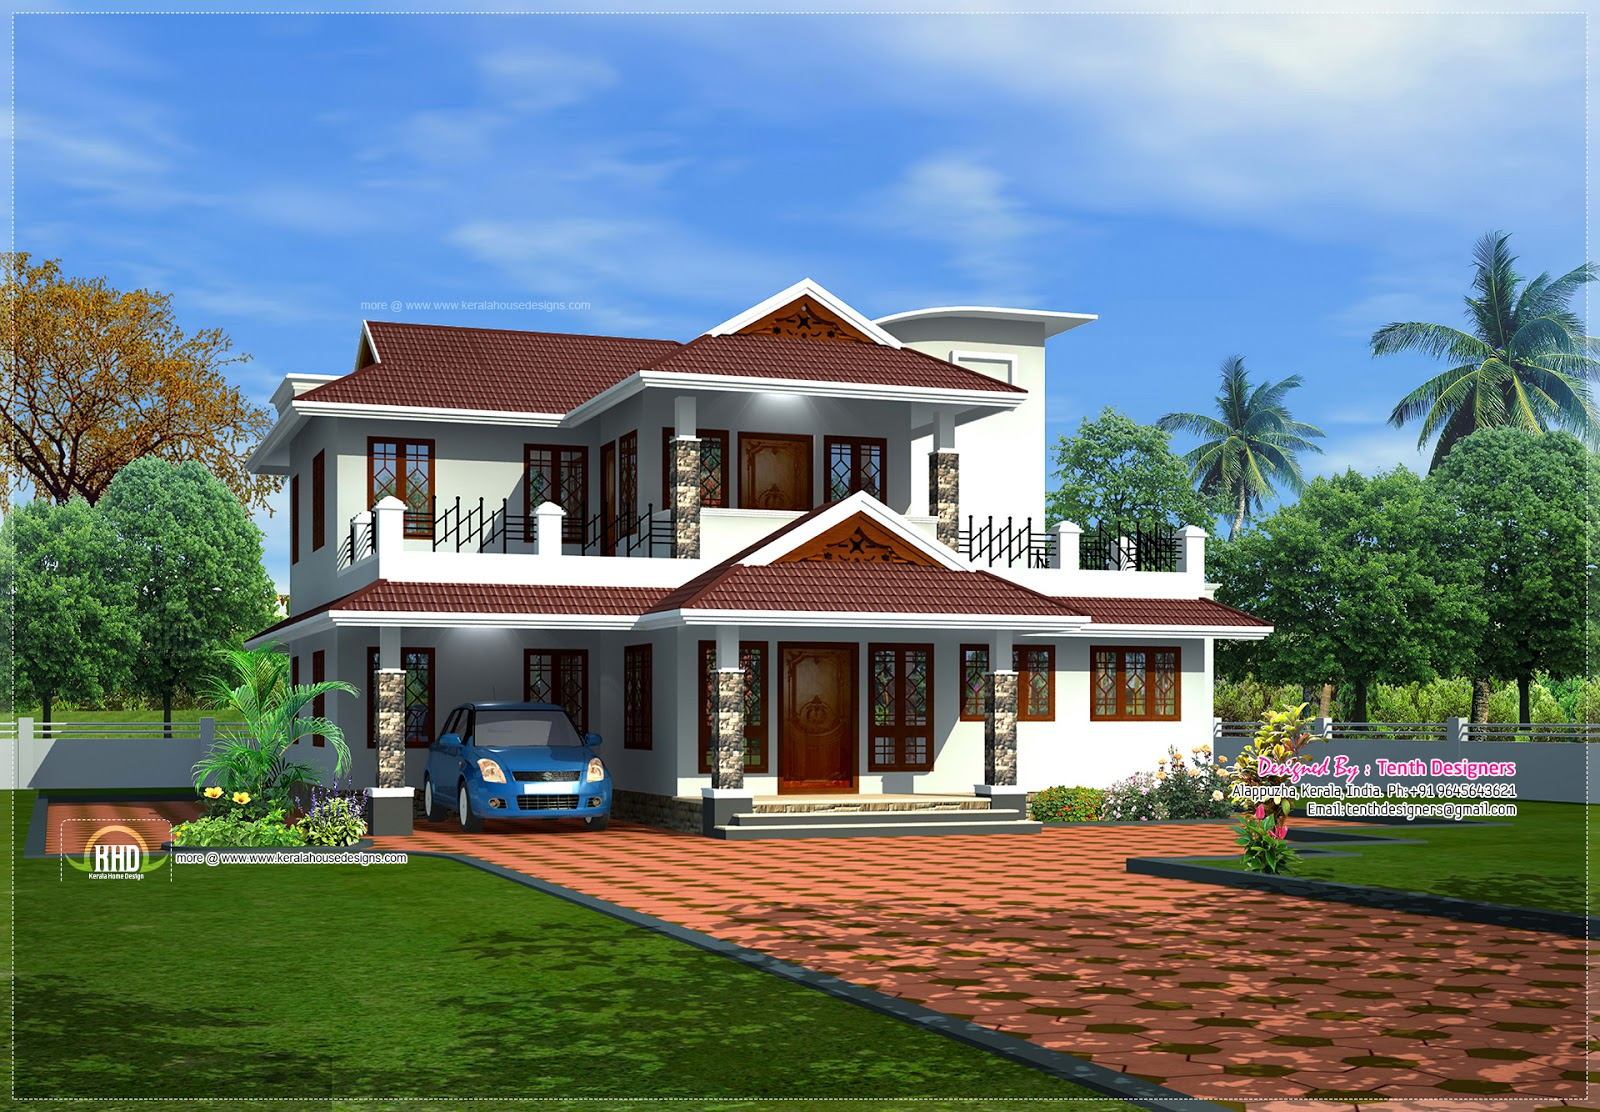 2000 Square Feet Kerala Model Home Kerala Home Design